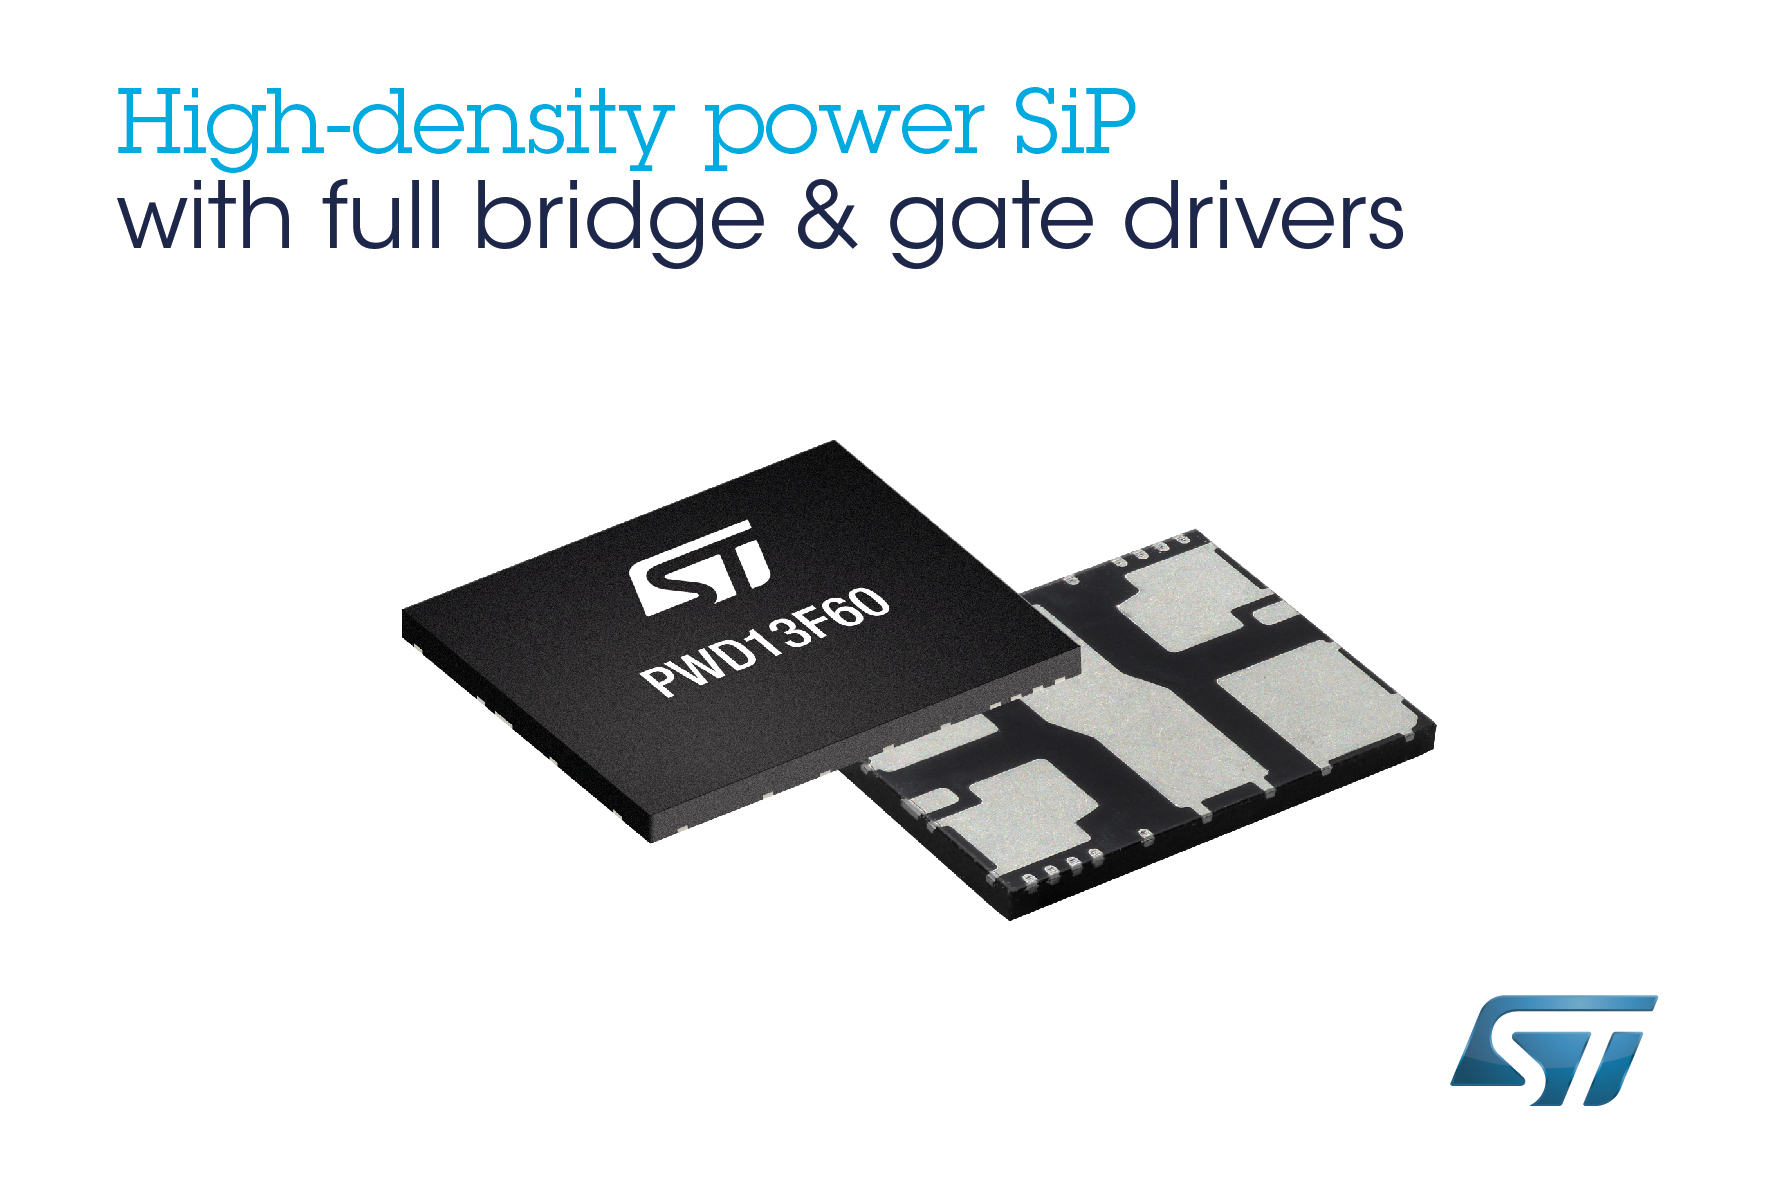 Complete Full-Bridge System-in-Package from STMicroelectronics